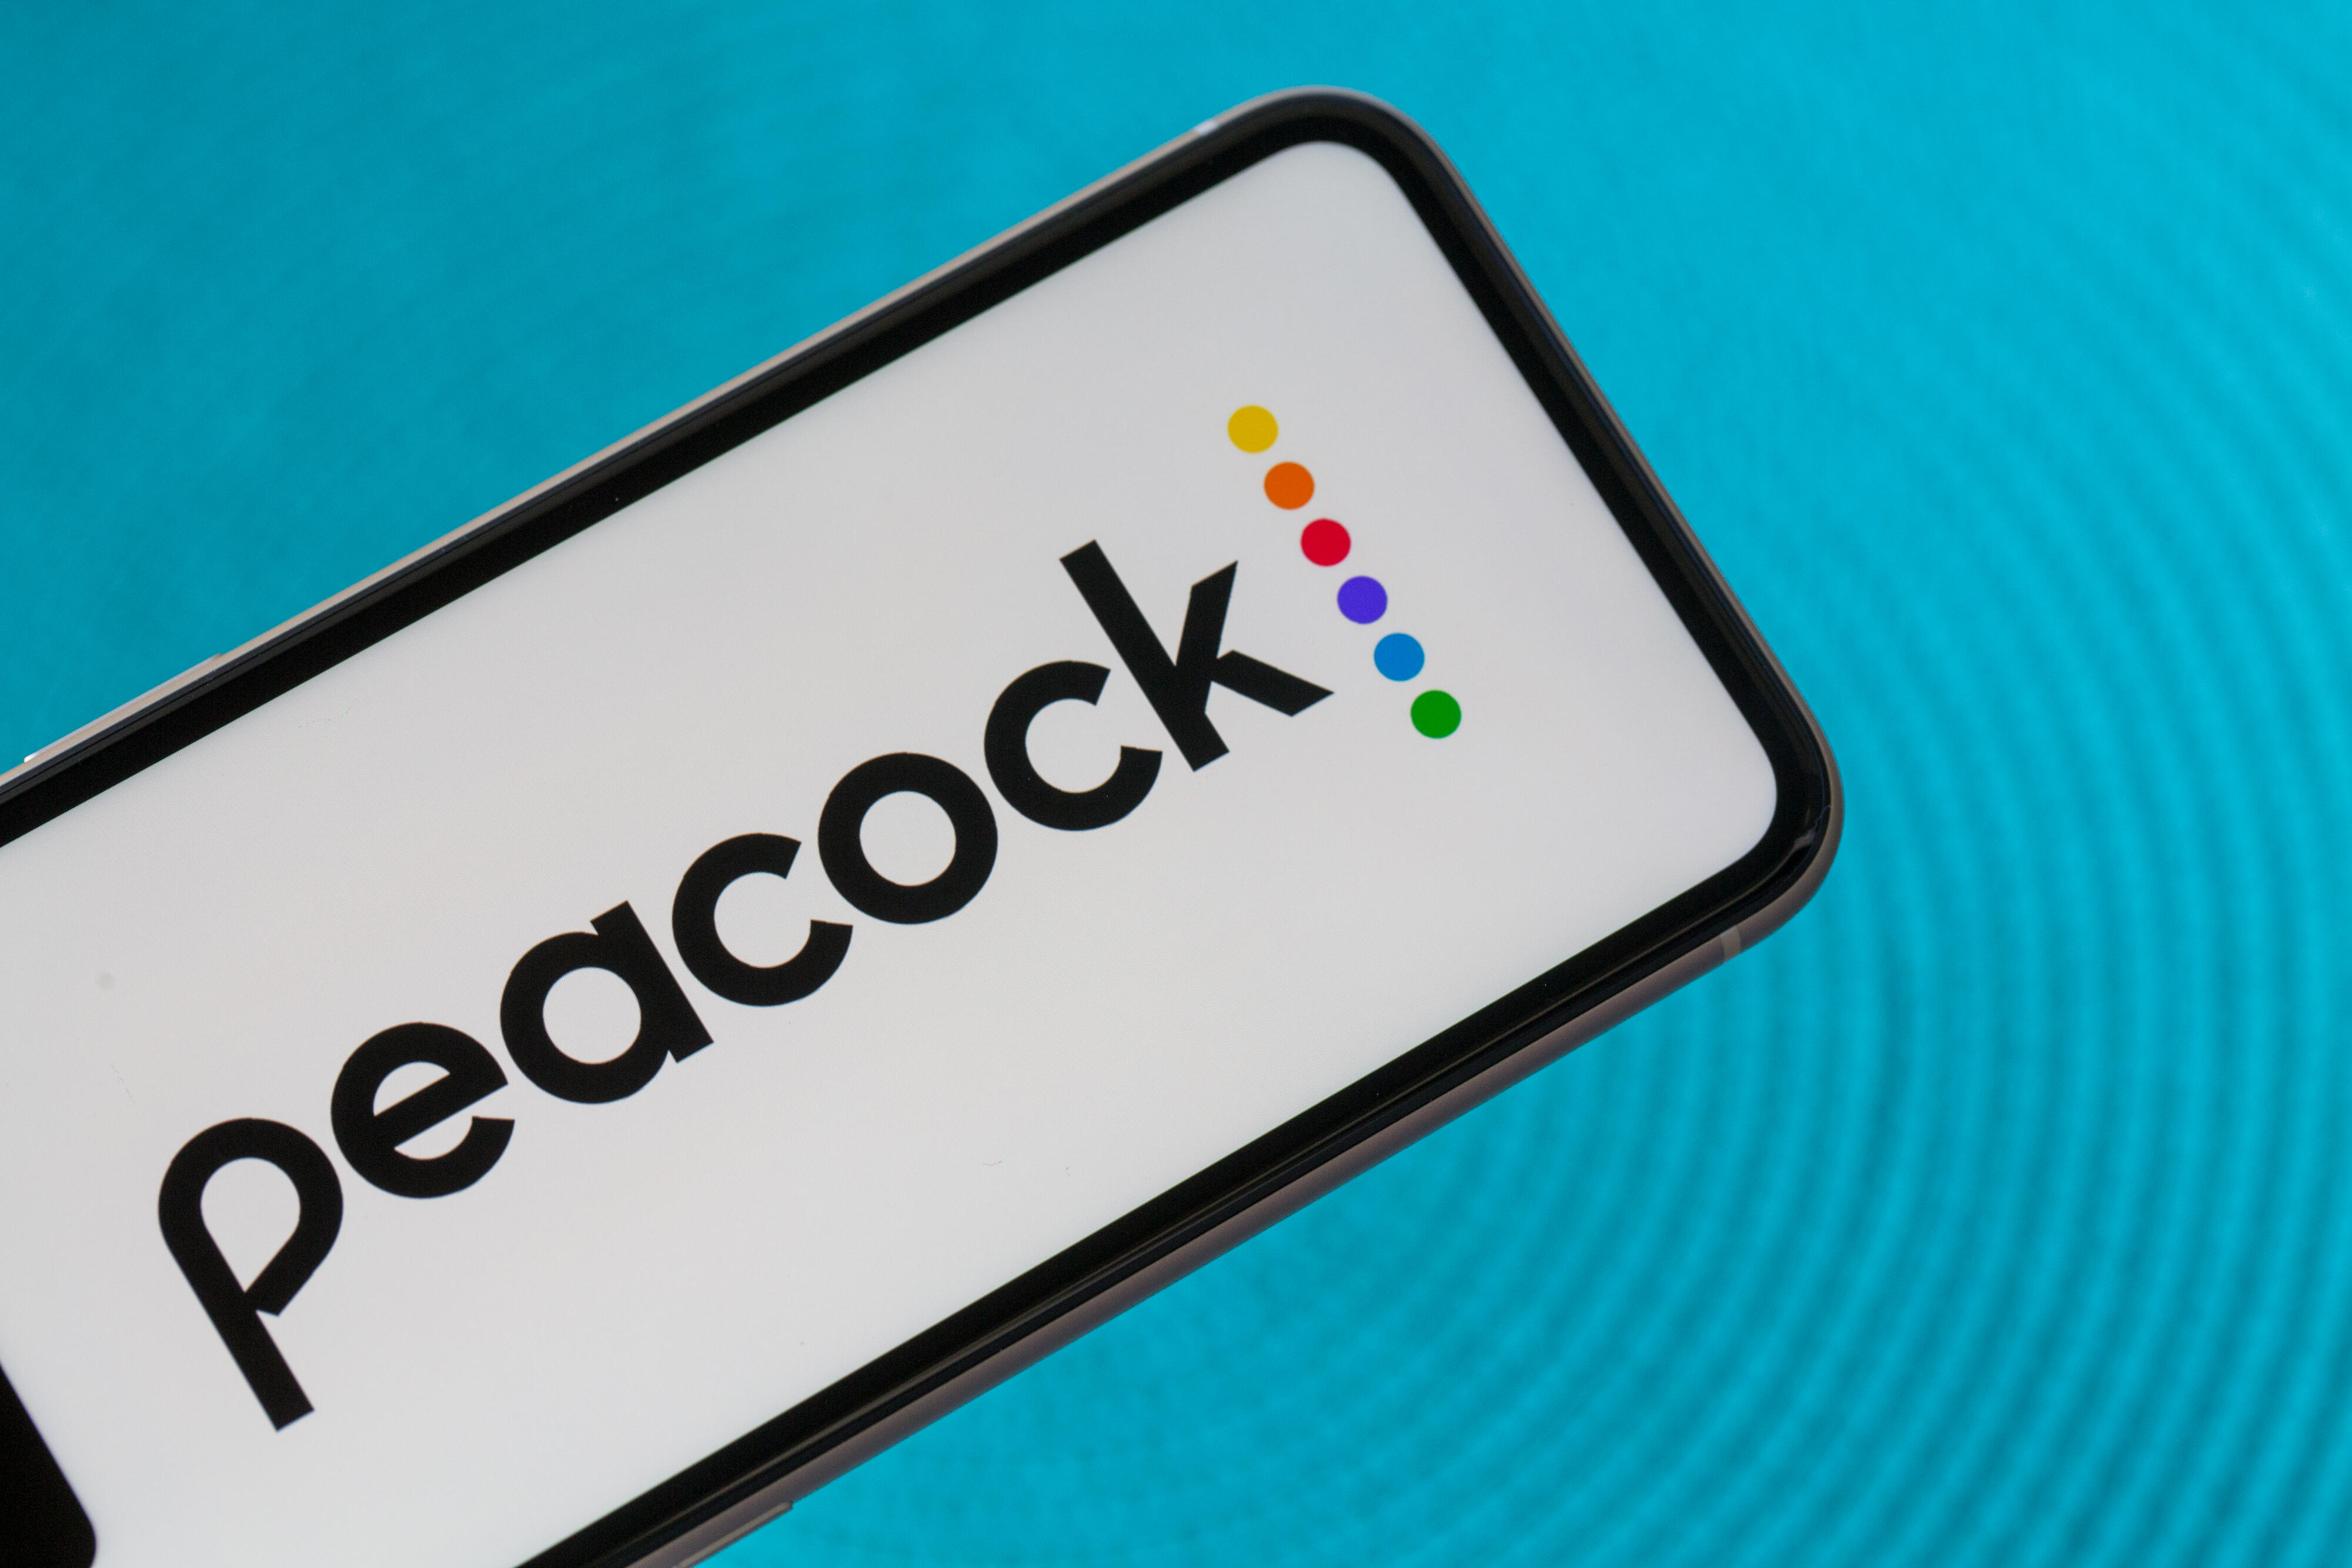 peacock-logo-iphone-11-3618